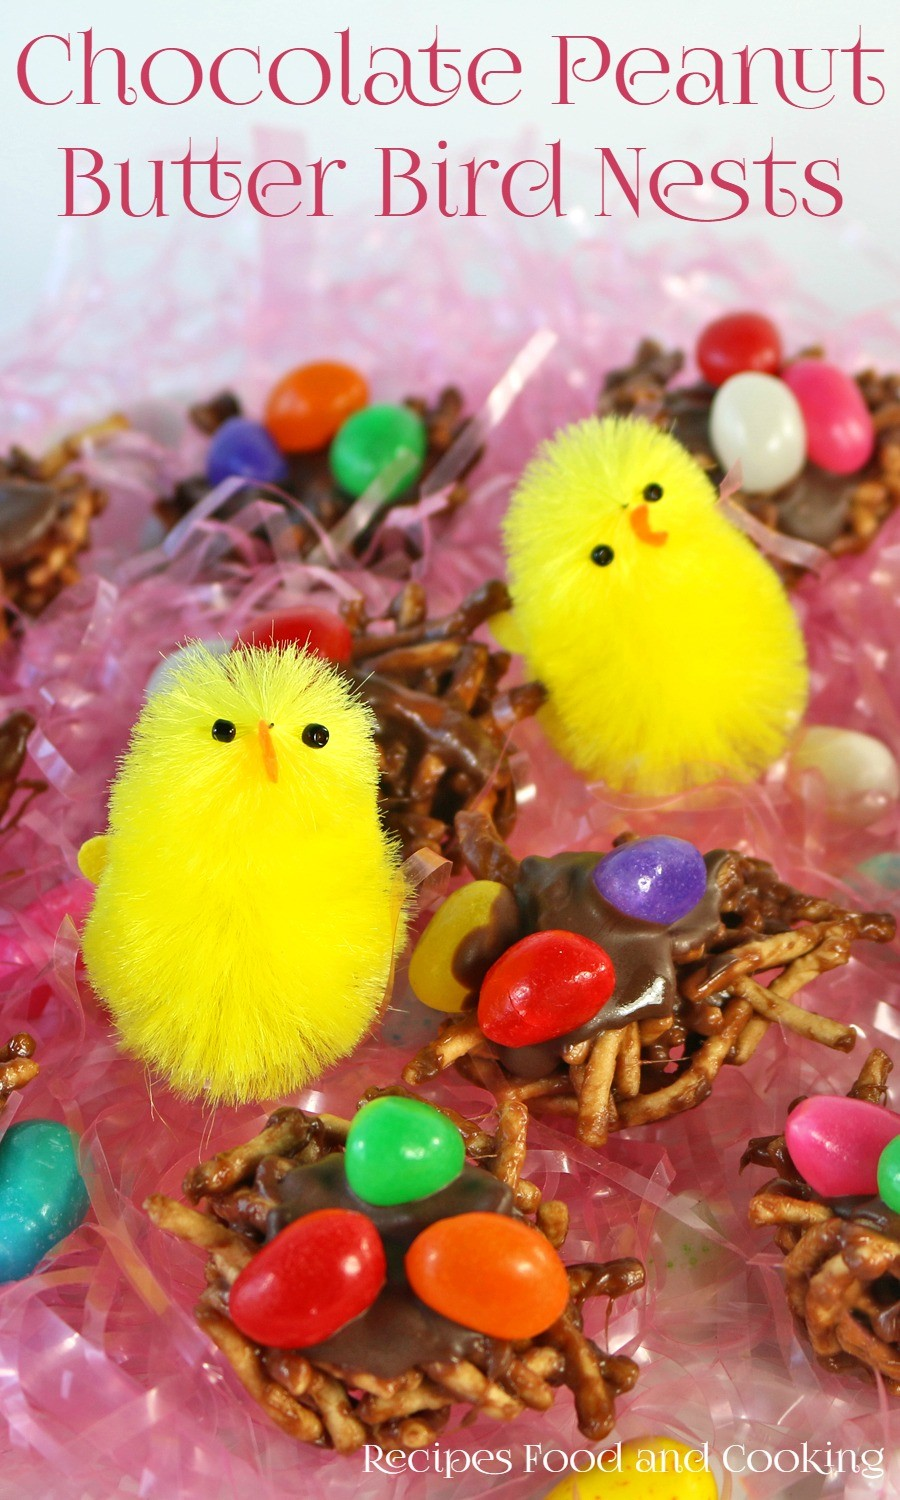 birds-nest-candy-4pf